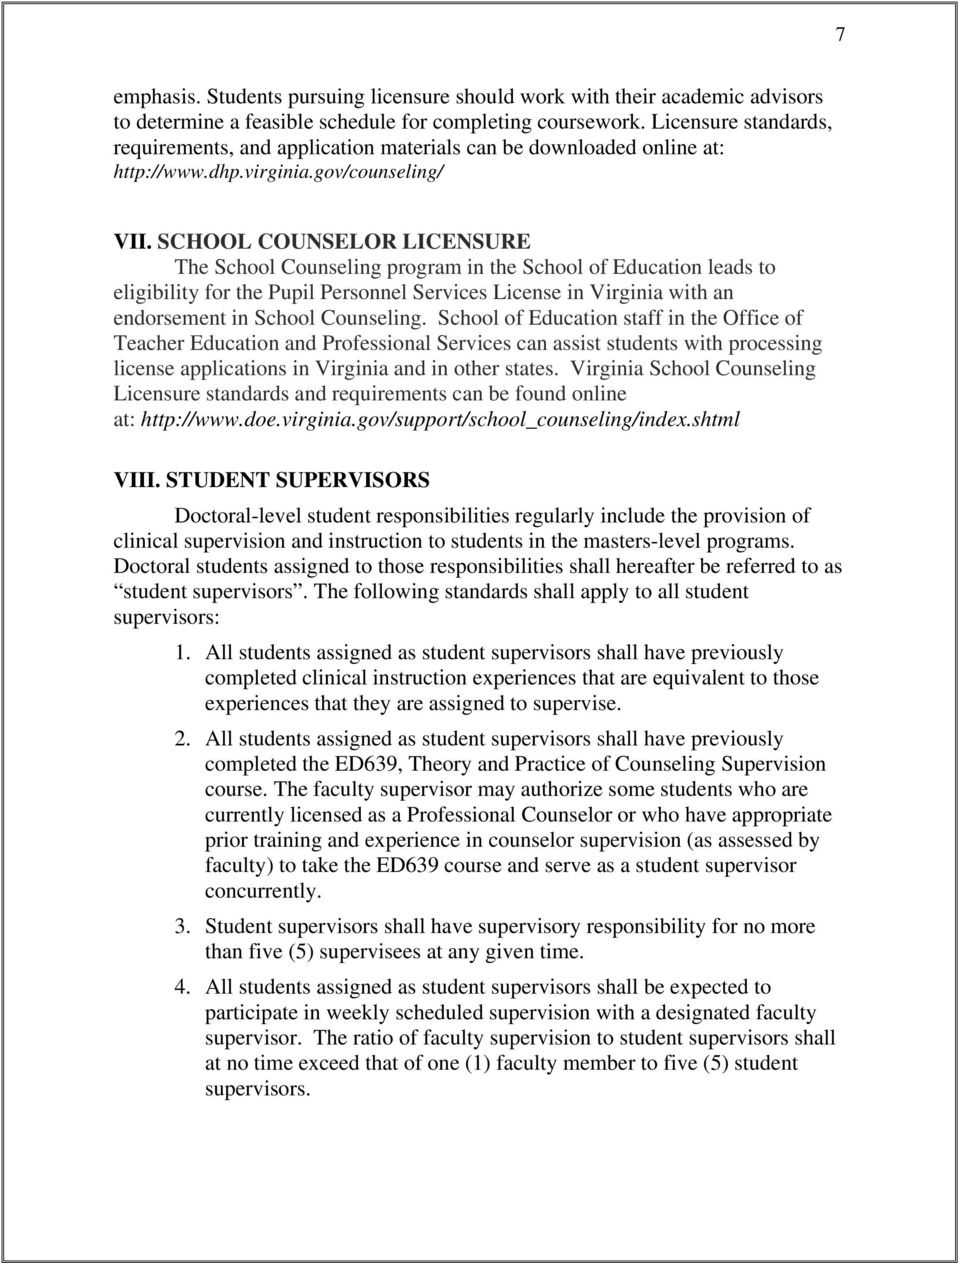 SCHOOL COUNSELOR LICENSURE The School Counseling program in the School of Education leads to eligibility for the Pupil Personnel Services License in Virginia with an endorsement in School Counseling.